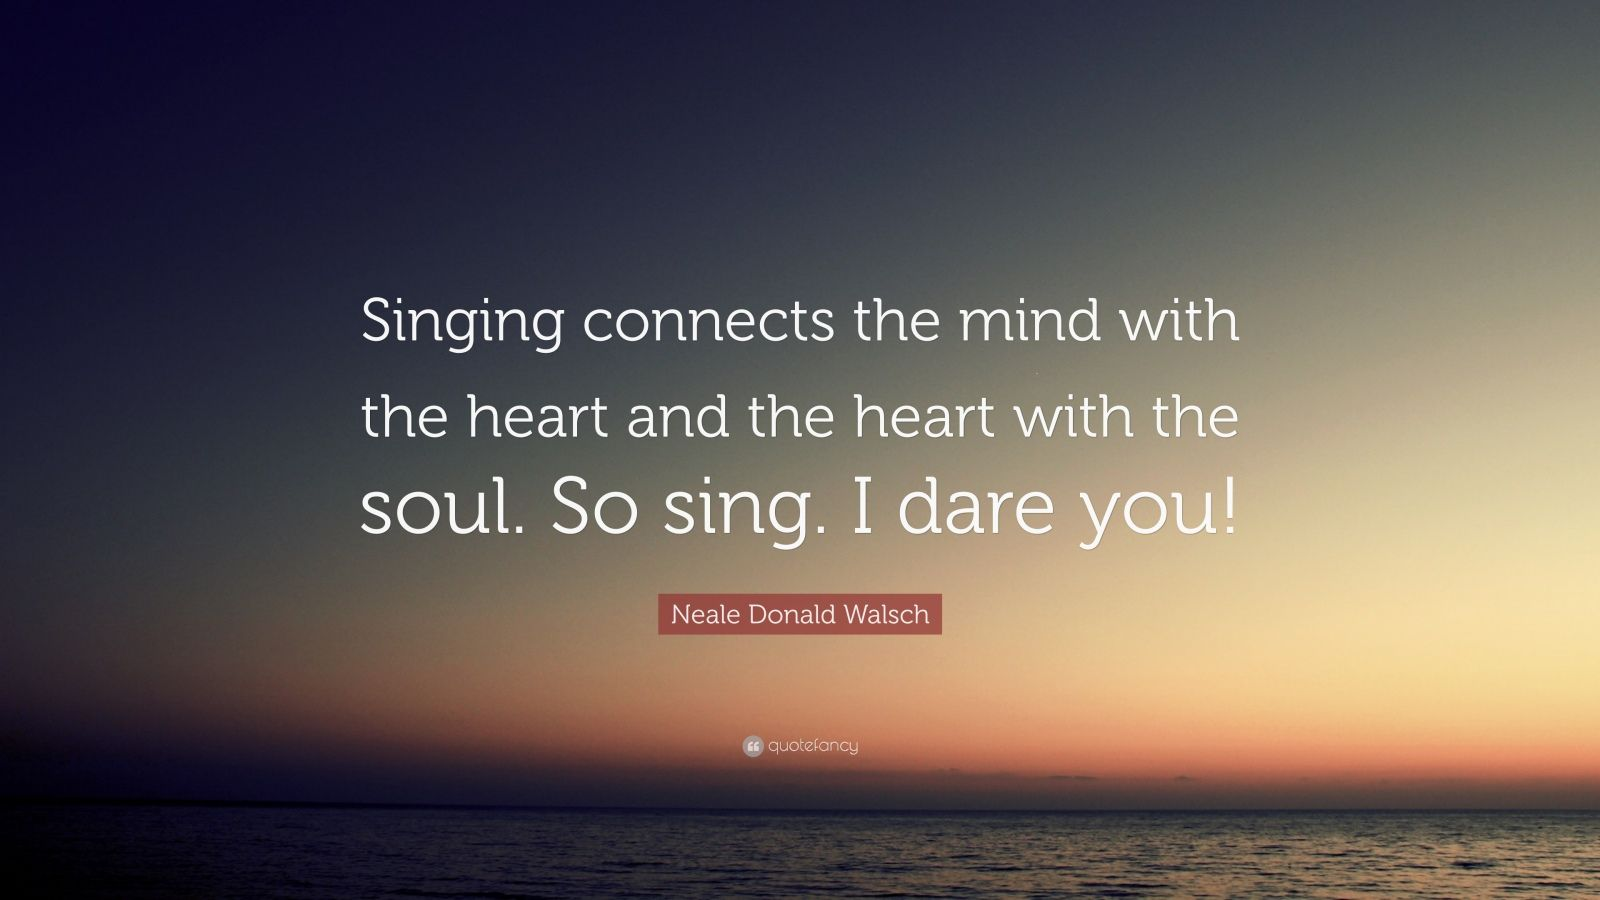 """Neale Donald Walsch Quote: """"Singing connects the mind with the heart and the heart with the soul. So sing. I dare you!"""""""